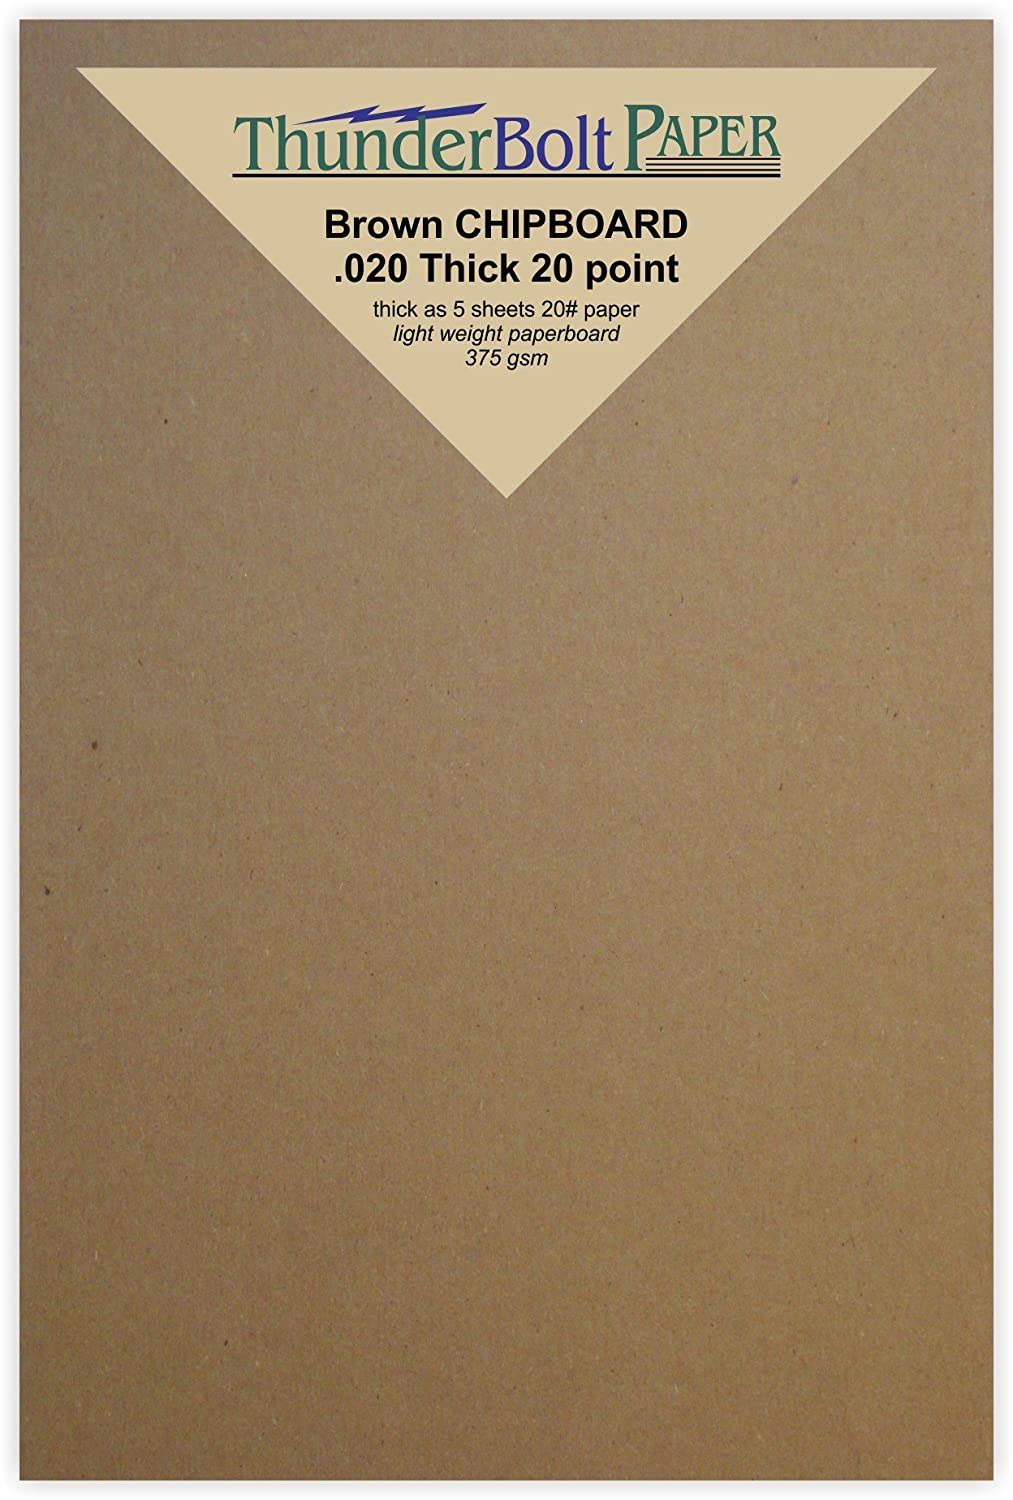 100 Sheets Chipboard 20pt (point) 4 X 6 Inches Light Weight Photo|Card Size .020 Caliper Thick Cardboard Craft and Packing Brown Kraft Paper Board TBP 4336978346